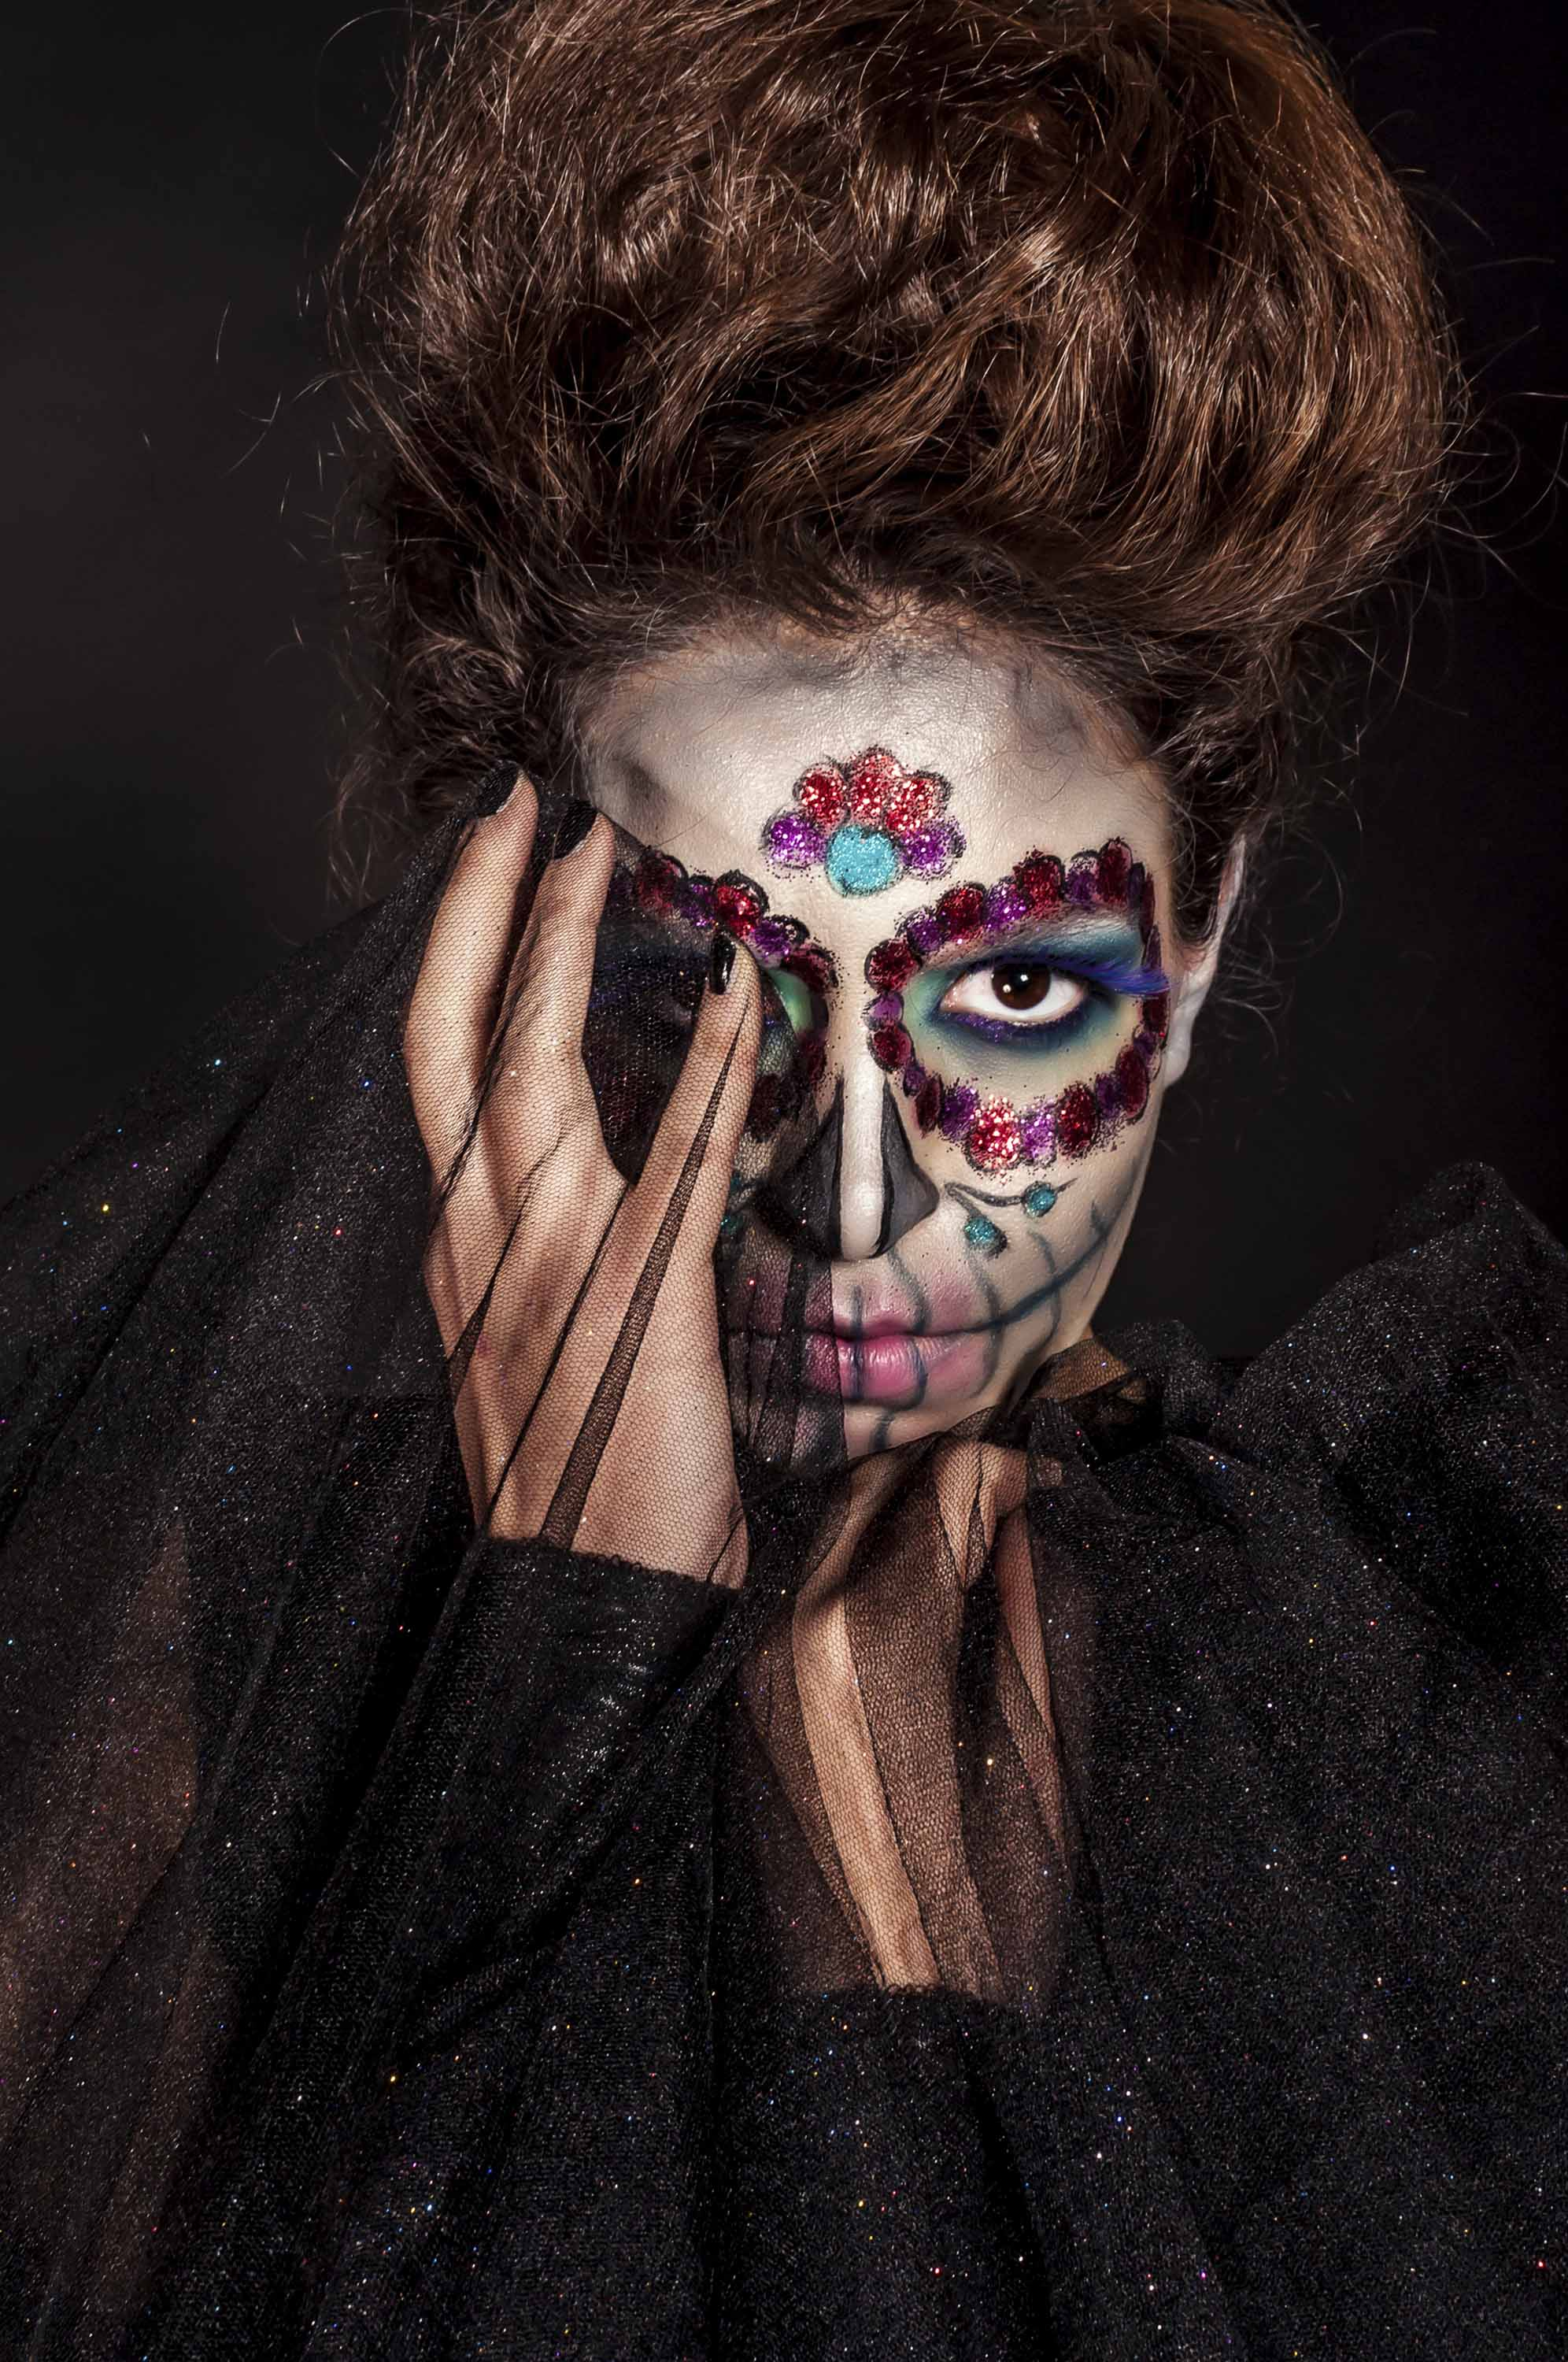 woman with sugar skull make up and hair in a large bouffant